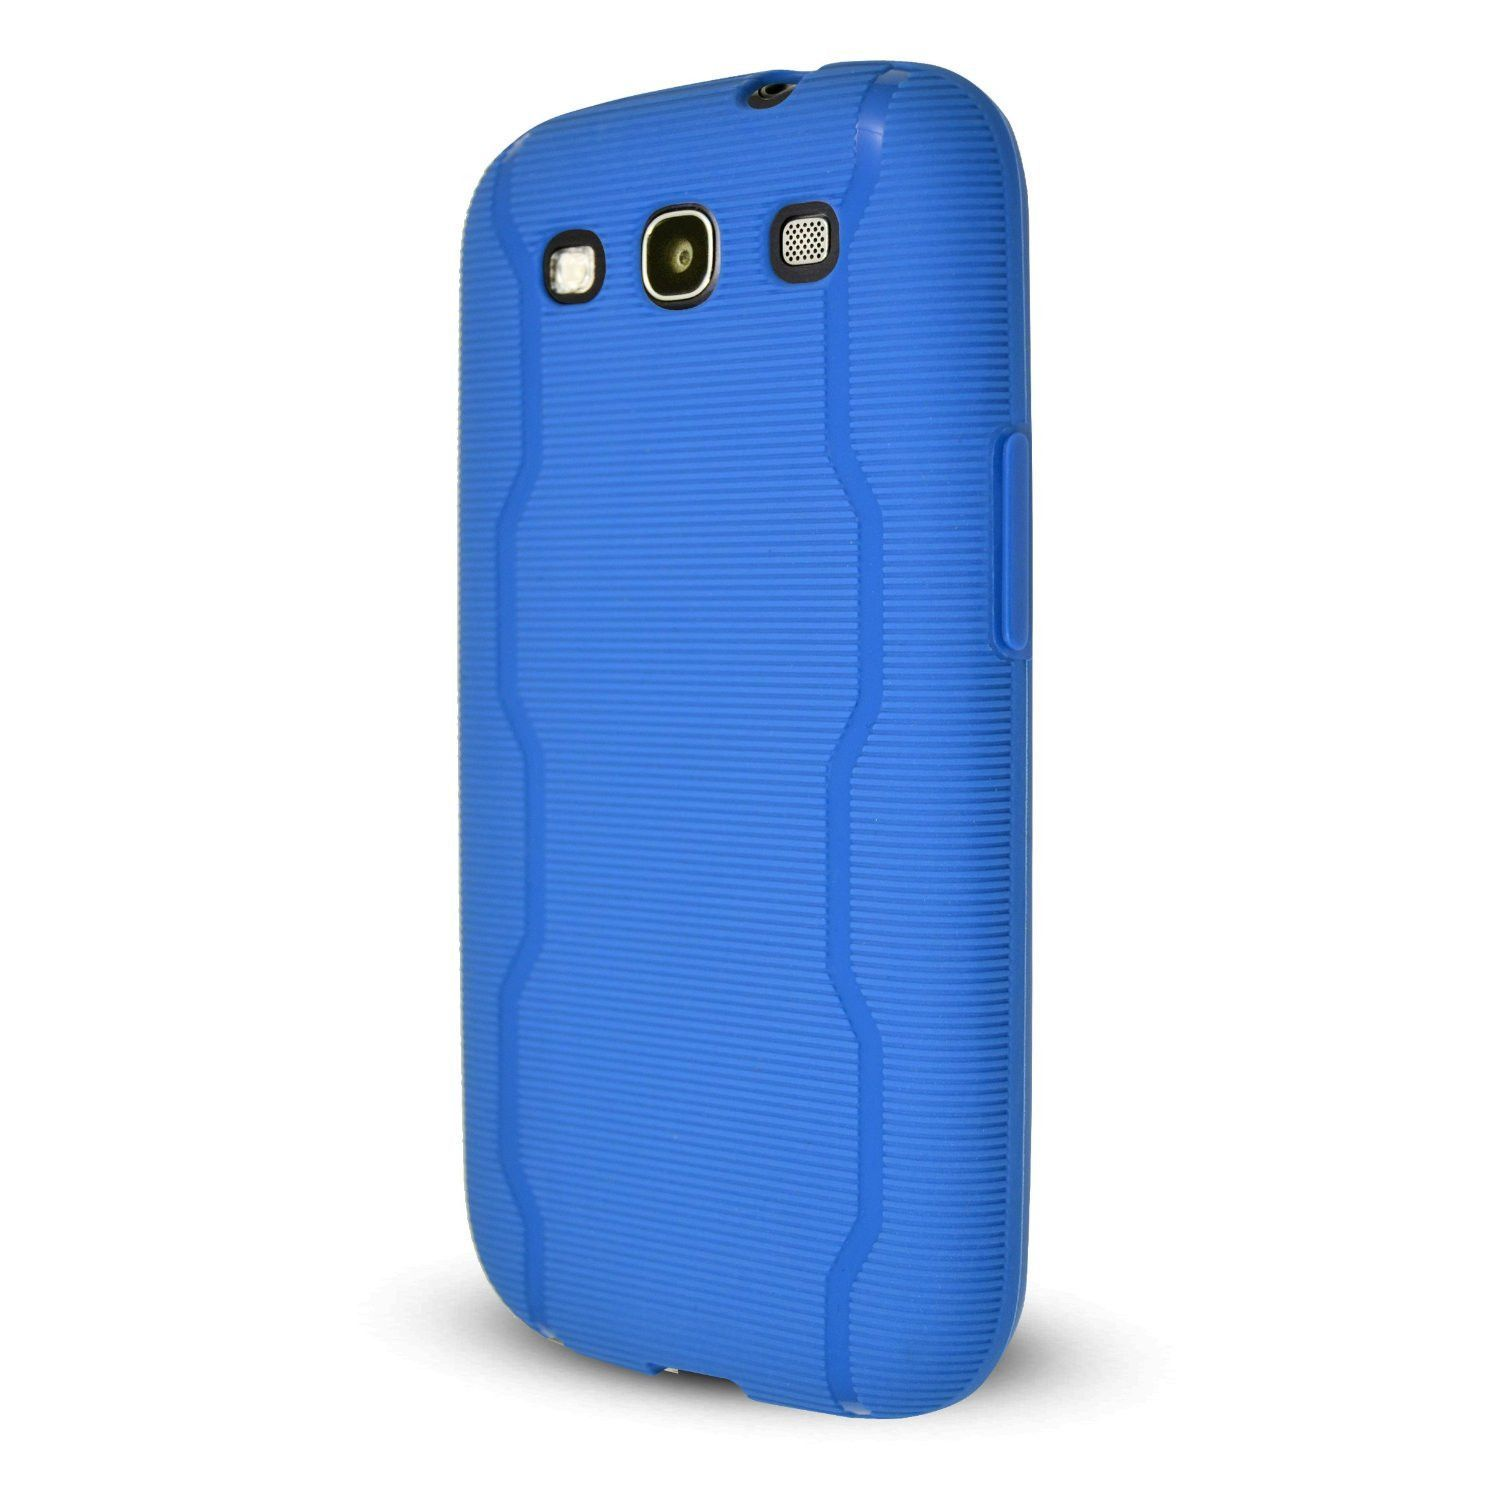 Technocel Textured Slider Skin Cover for Samsung Galaxy S3 (Blue) - SAL710SSTBL-Z